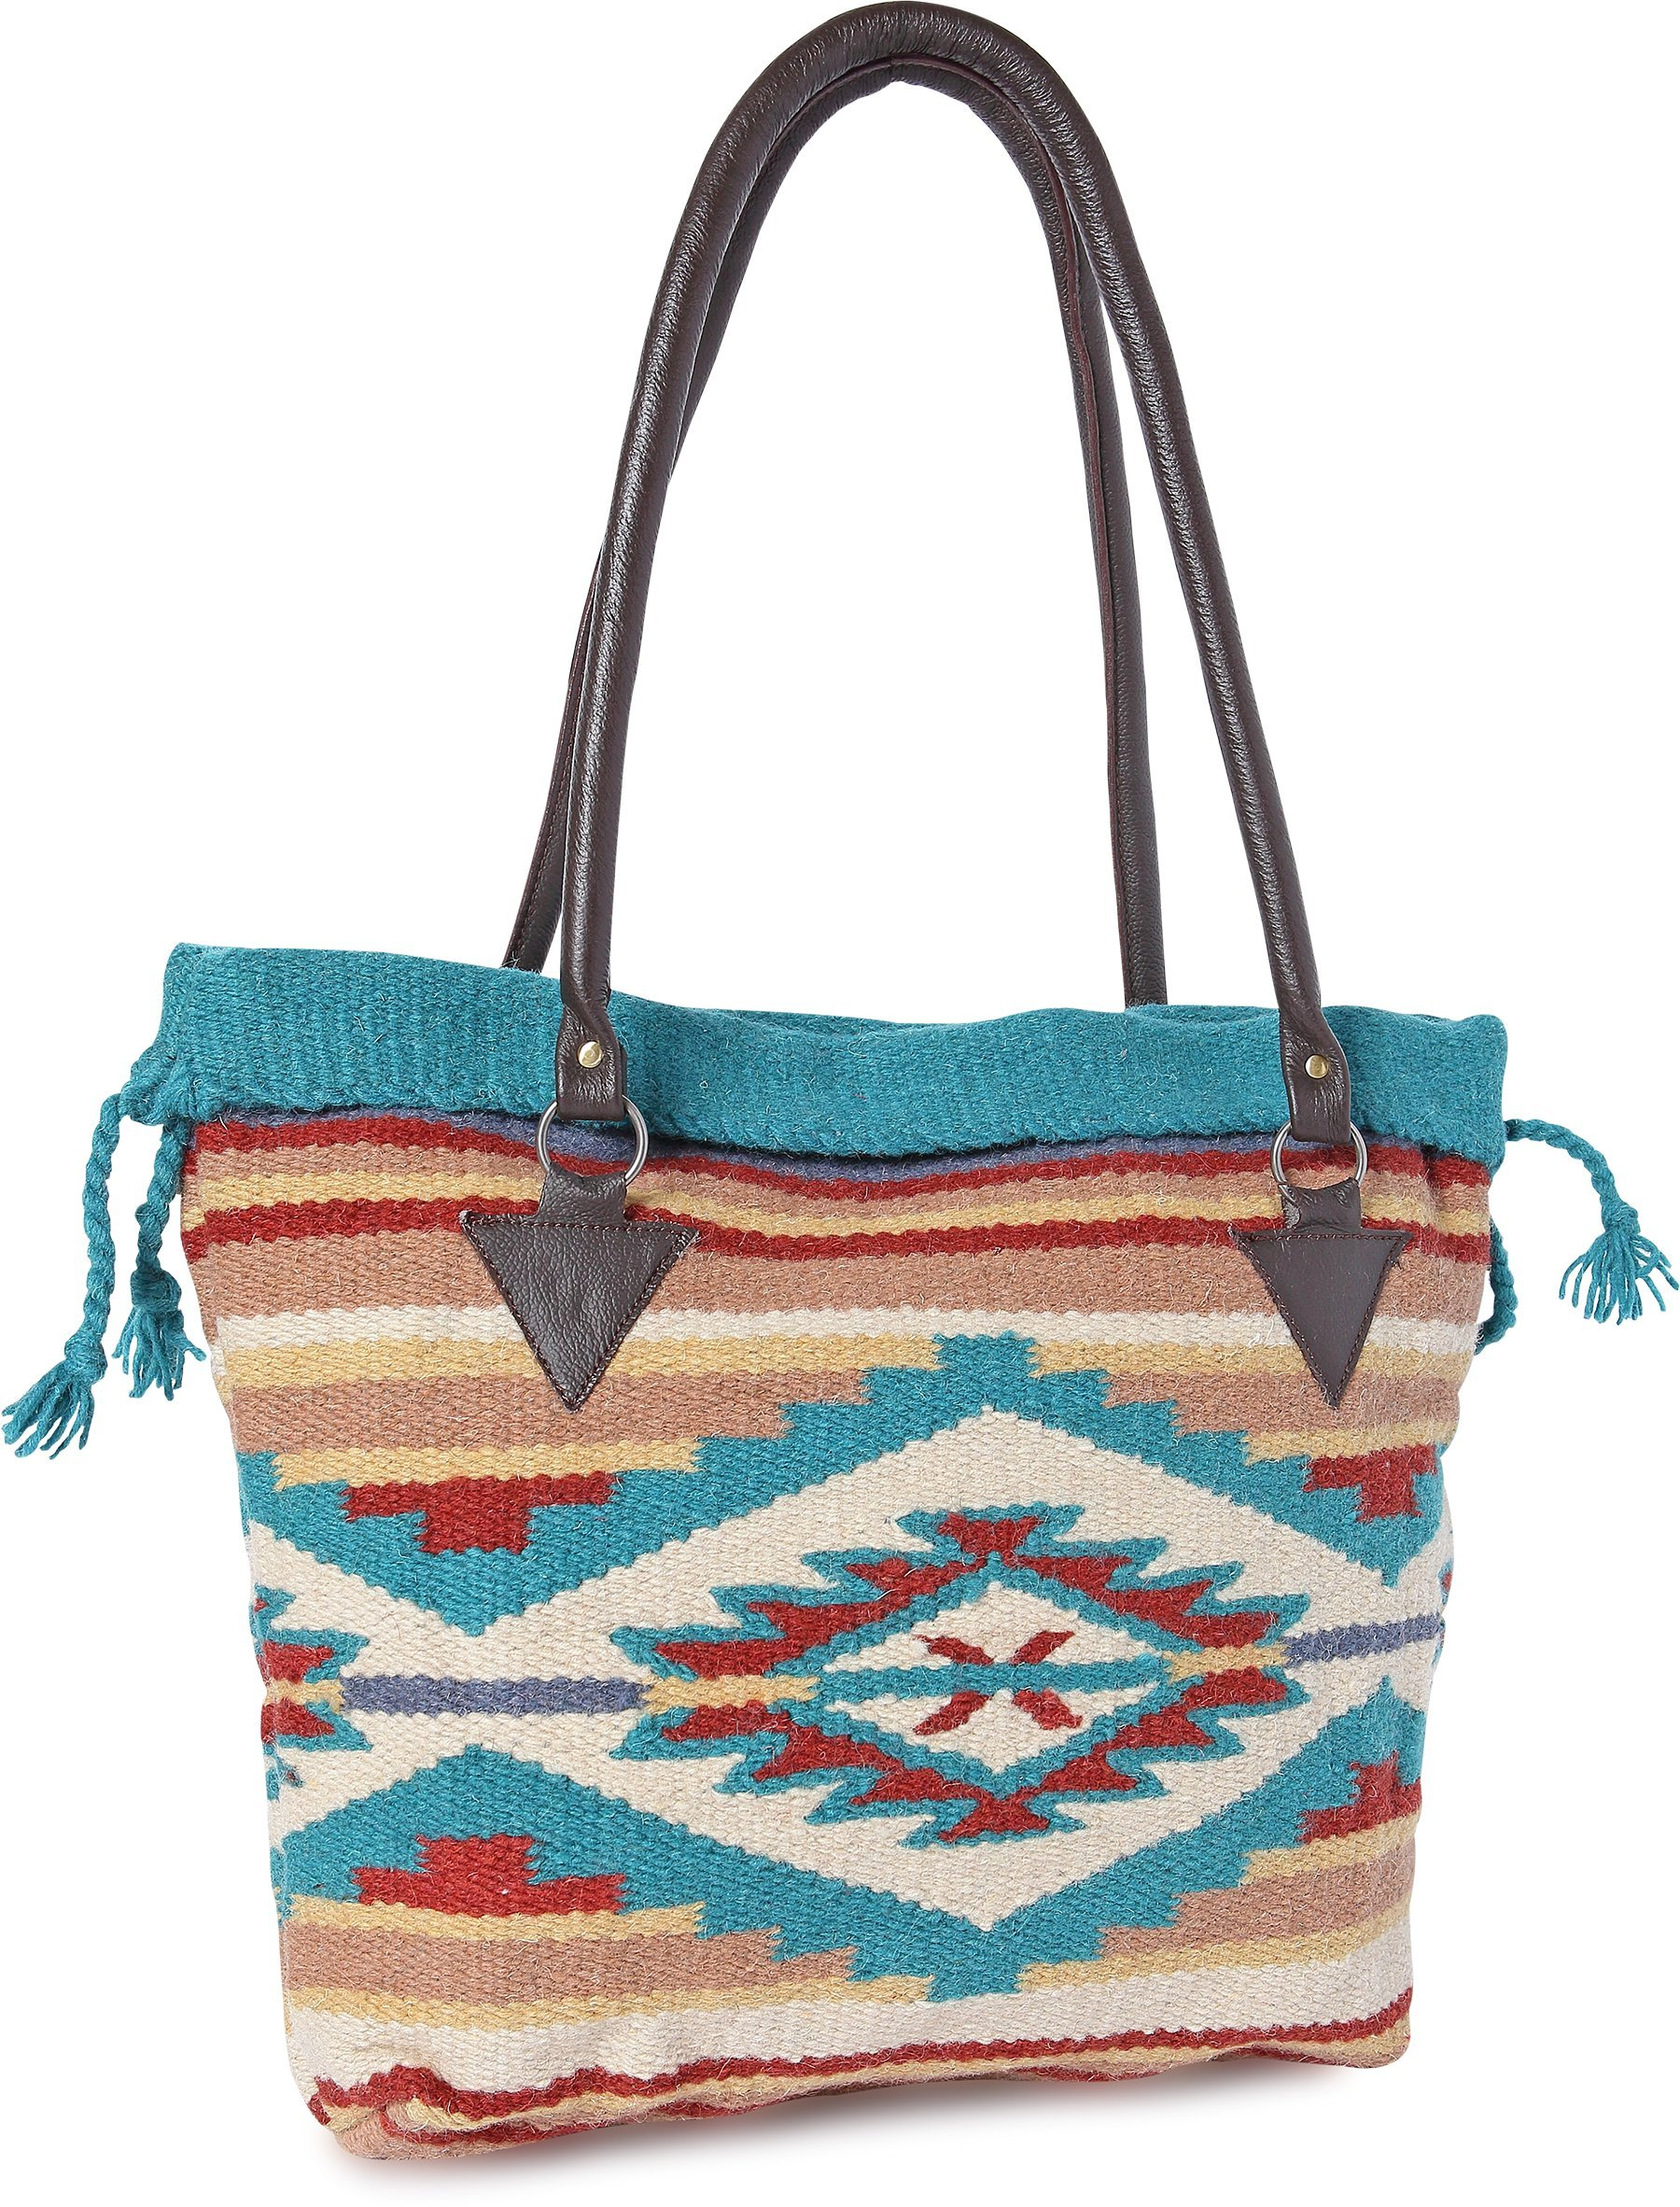 Handwoven Wool Malibu Purse with Genuine Leather handles. Large Eco Friendly Tote Bag, Native American Styles ((B) Beige Pyramid)